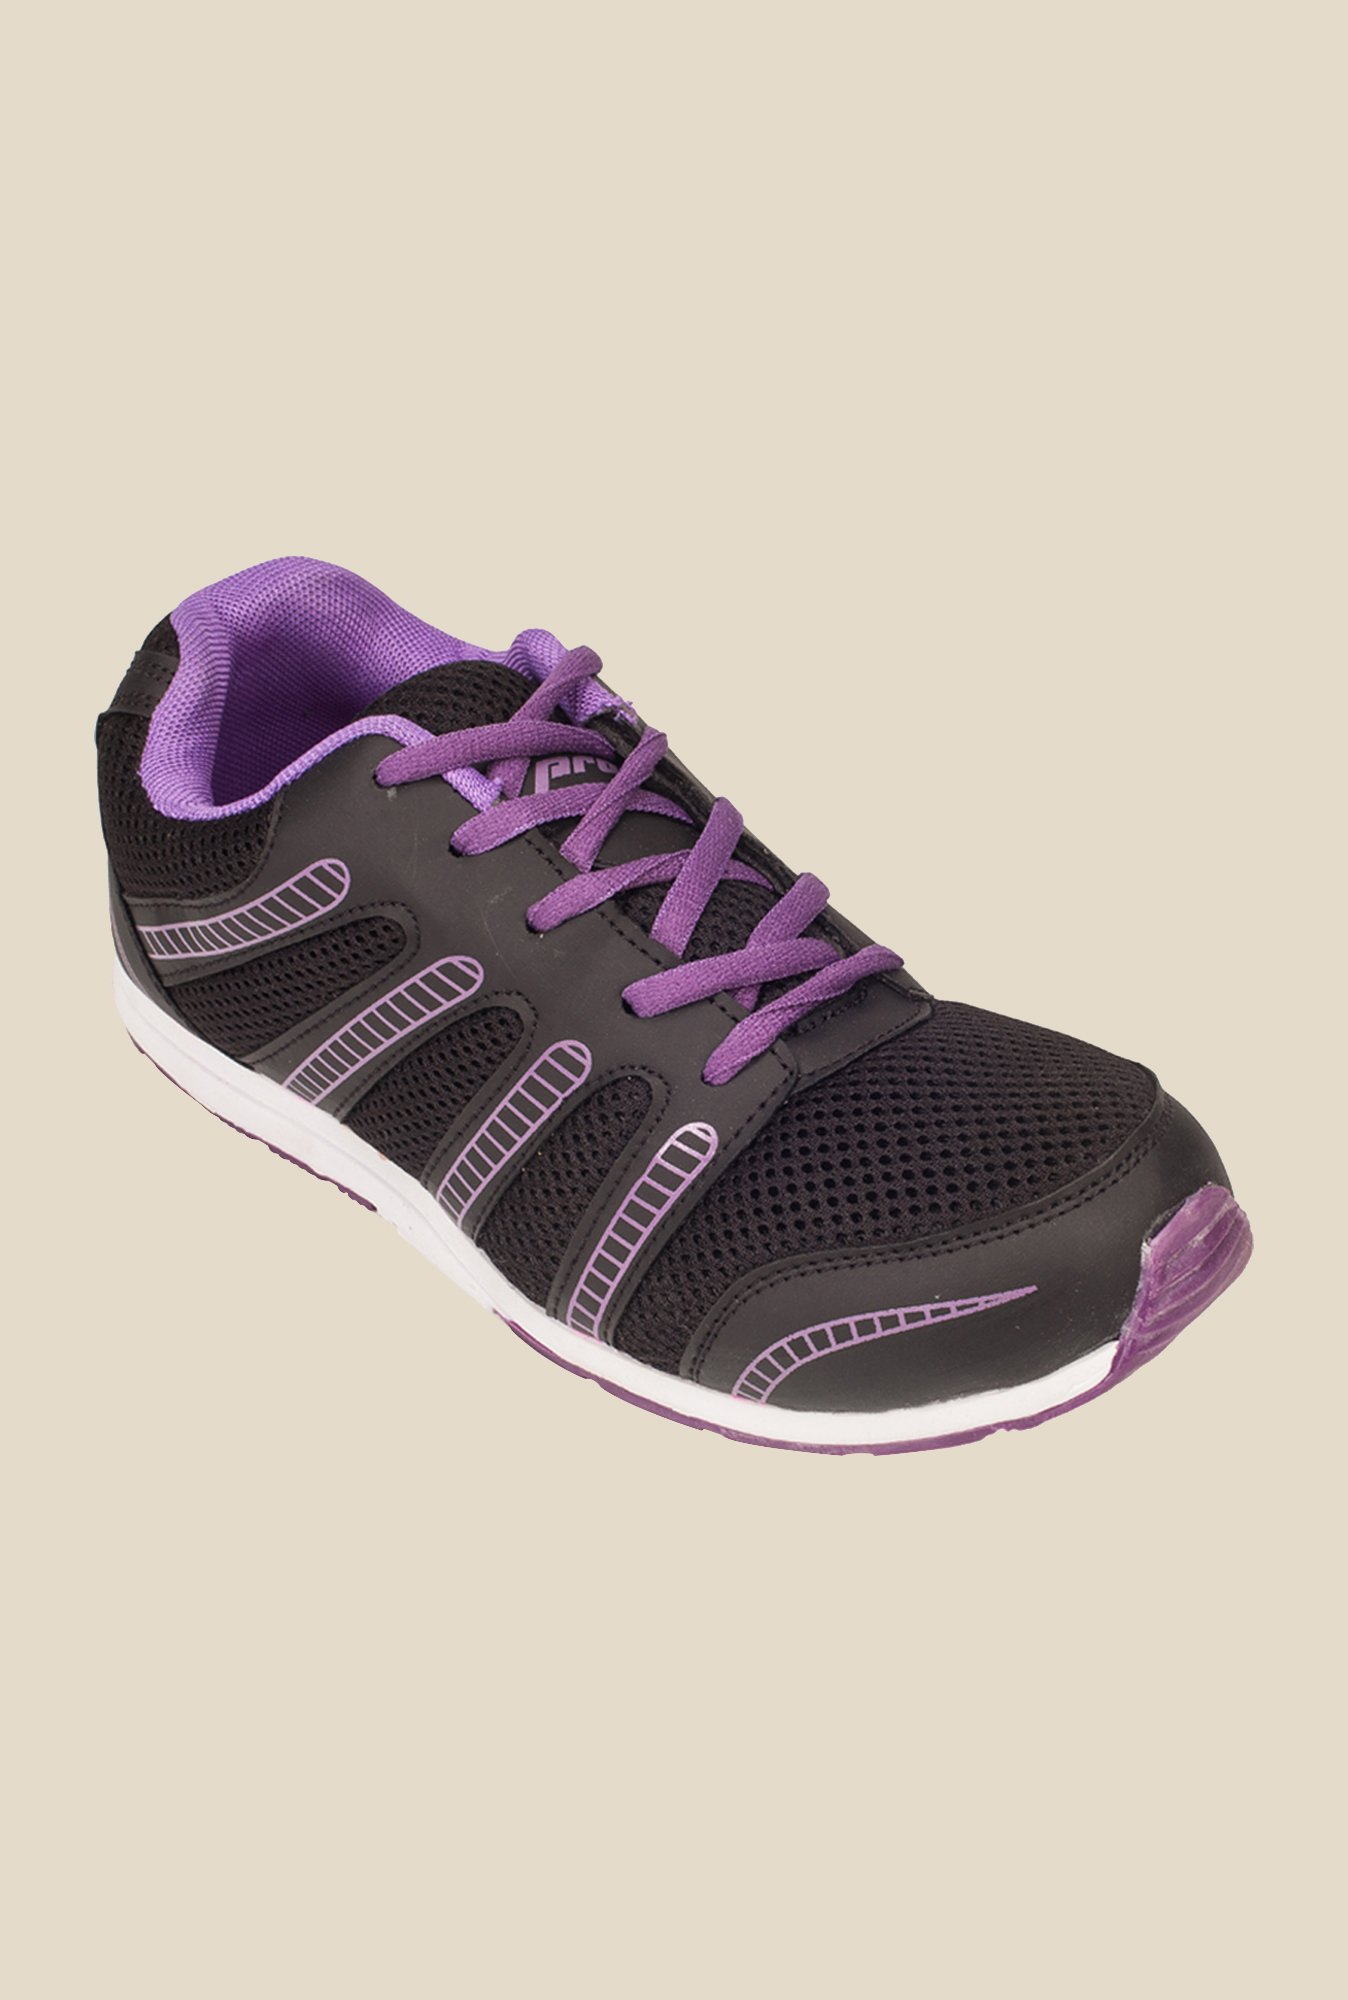 Khadim's Pro Black & Purple Running Shoes